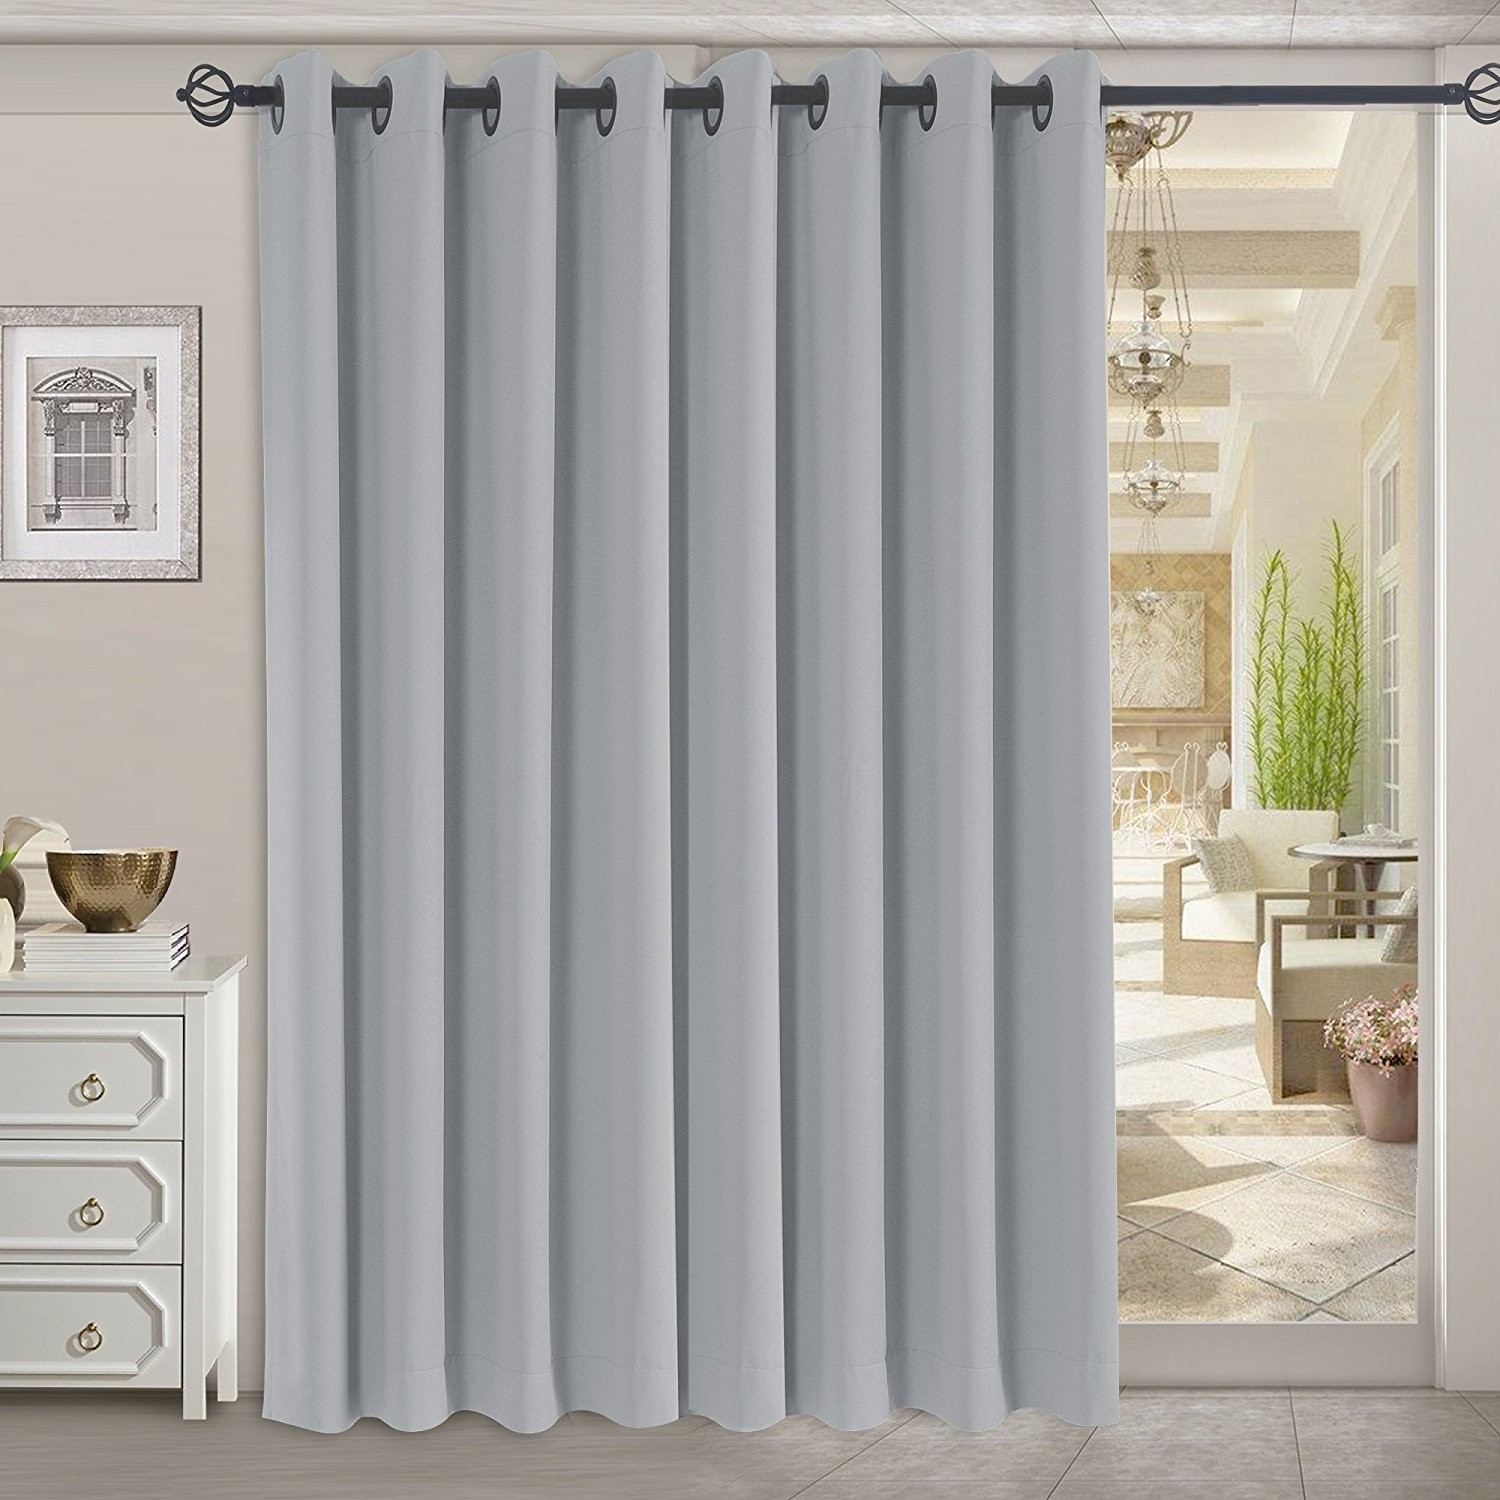 Rhf Thermal Insulated Blackout Patio Door Curtain Panel Sliding Pertaining To Thermal Door Curtains (Image 12 of 15)